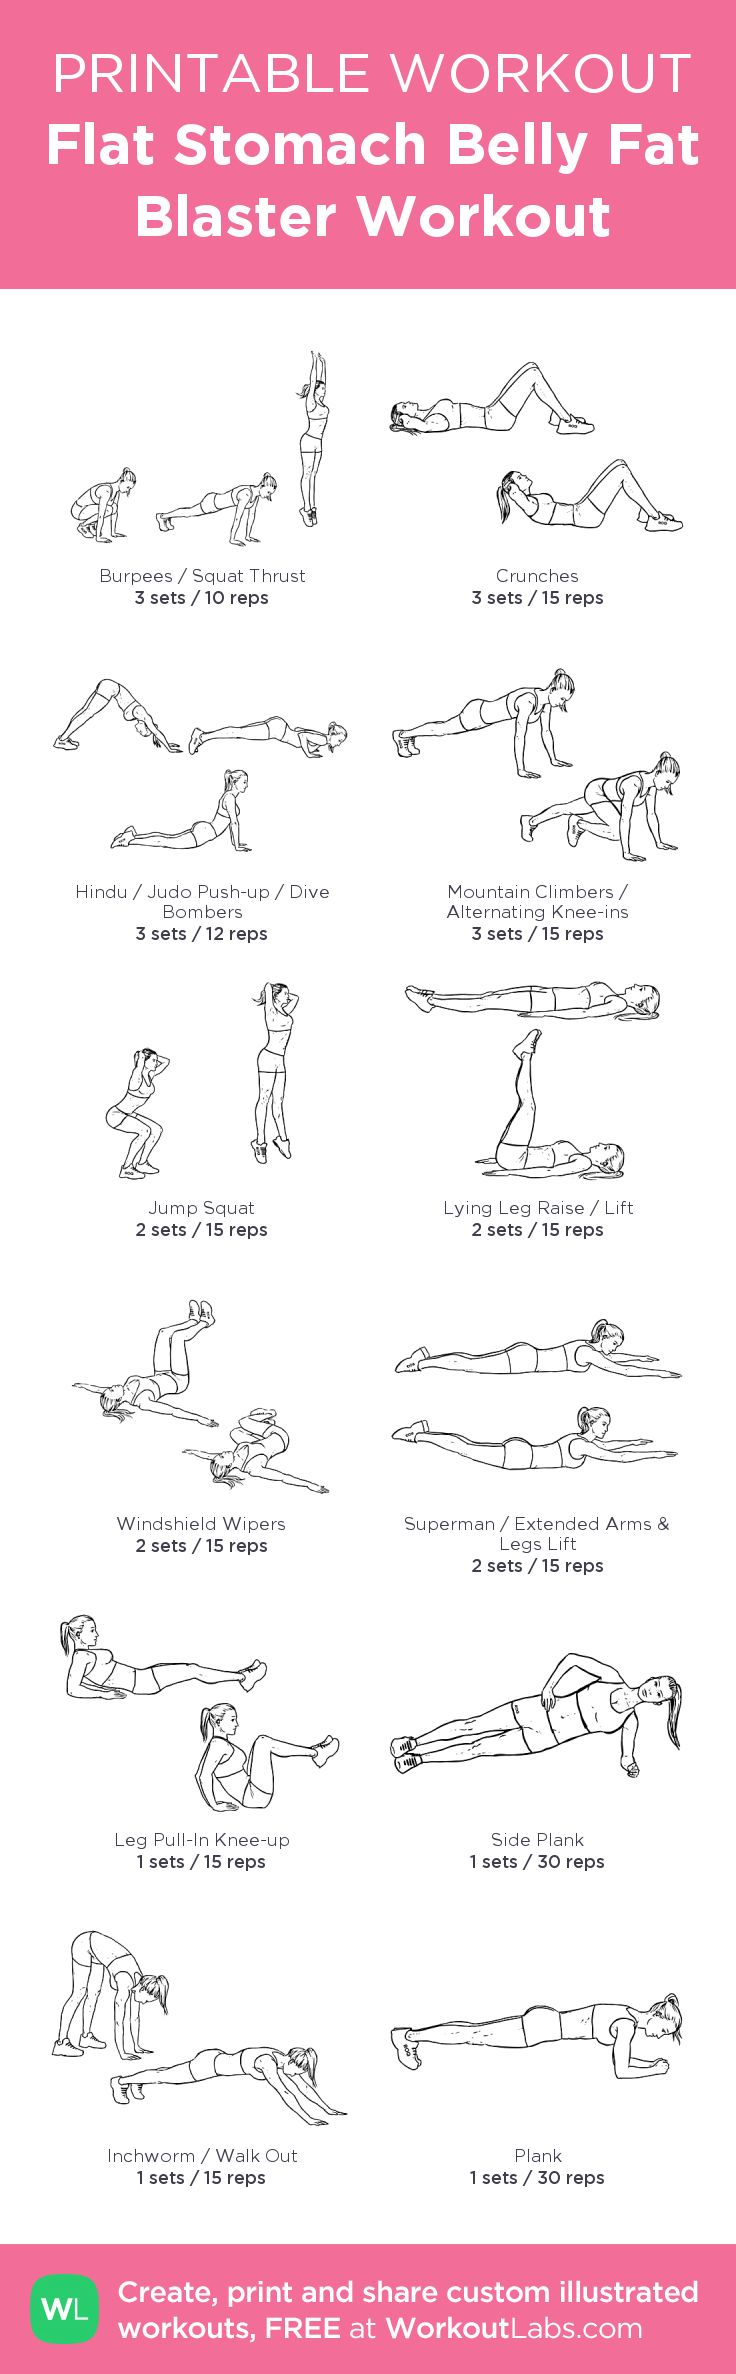 Flat Stomach Belly Fat Blaster No Equipment Workout for Women – Free beginner printable workout you can do at home without weights today! Visit http://wlabs.me/1pirVdg